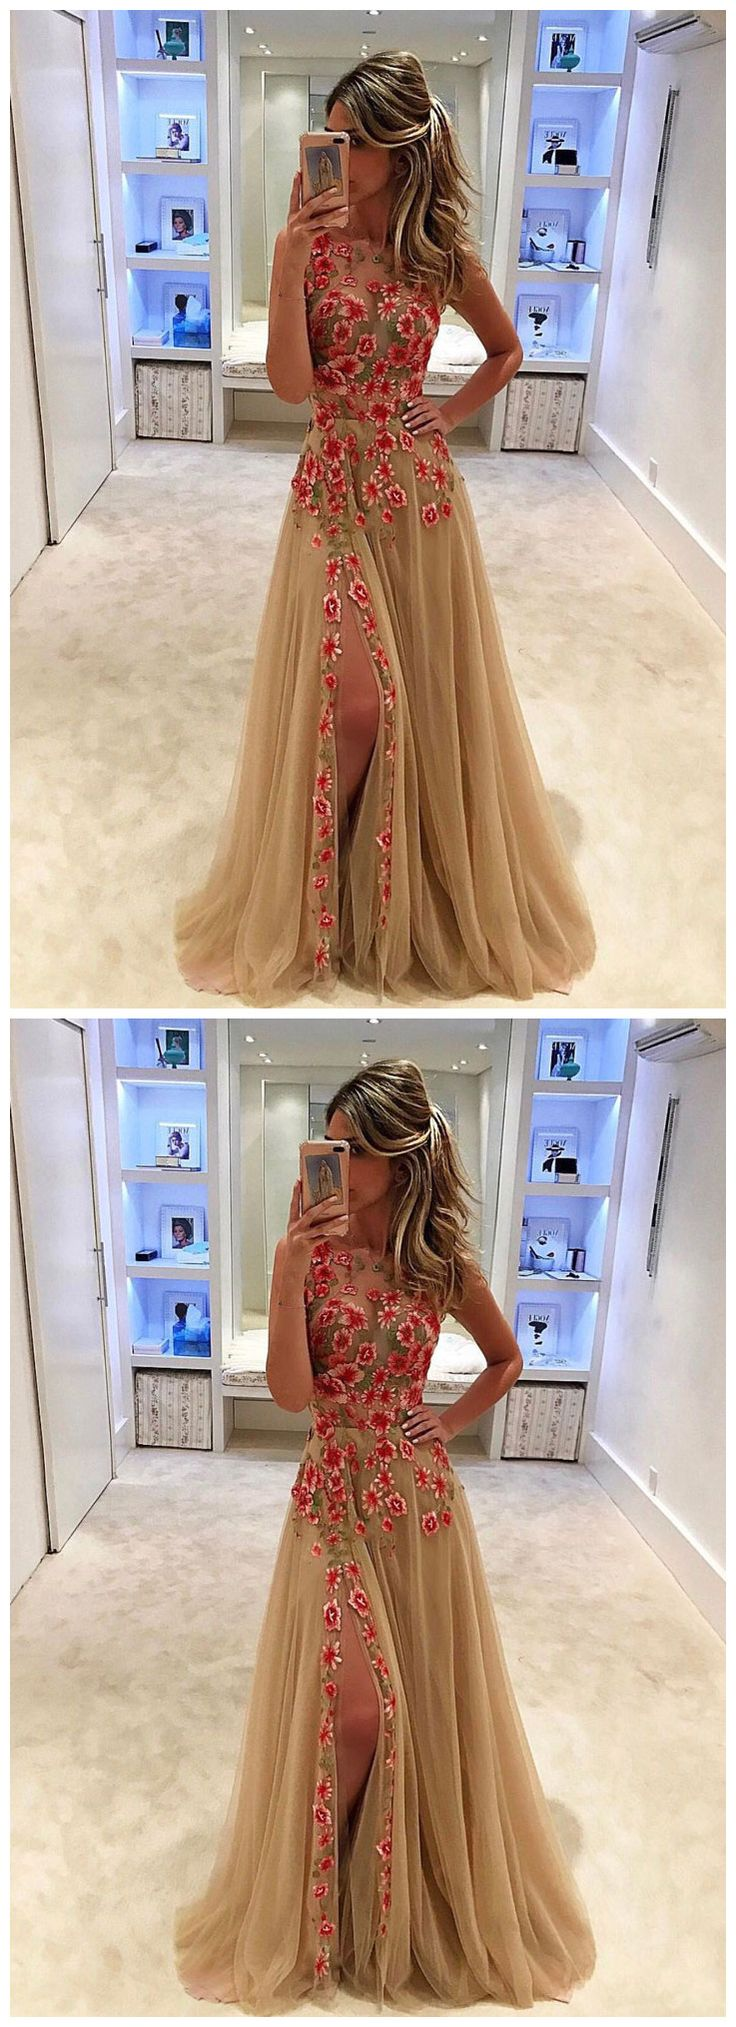 Unique champagne tulle applique long prom dress, evening dress #promdress #promdresses #hiprom #prom #GraduationDress #2018 #PartyDress #laceprom #champagneprom